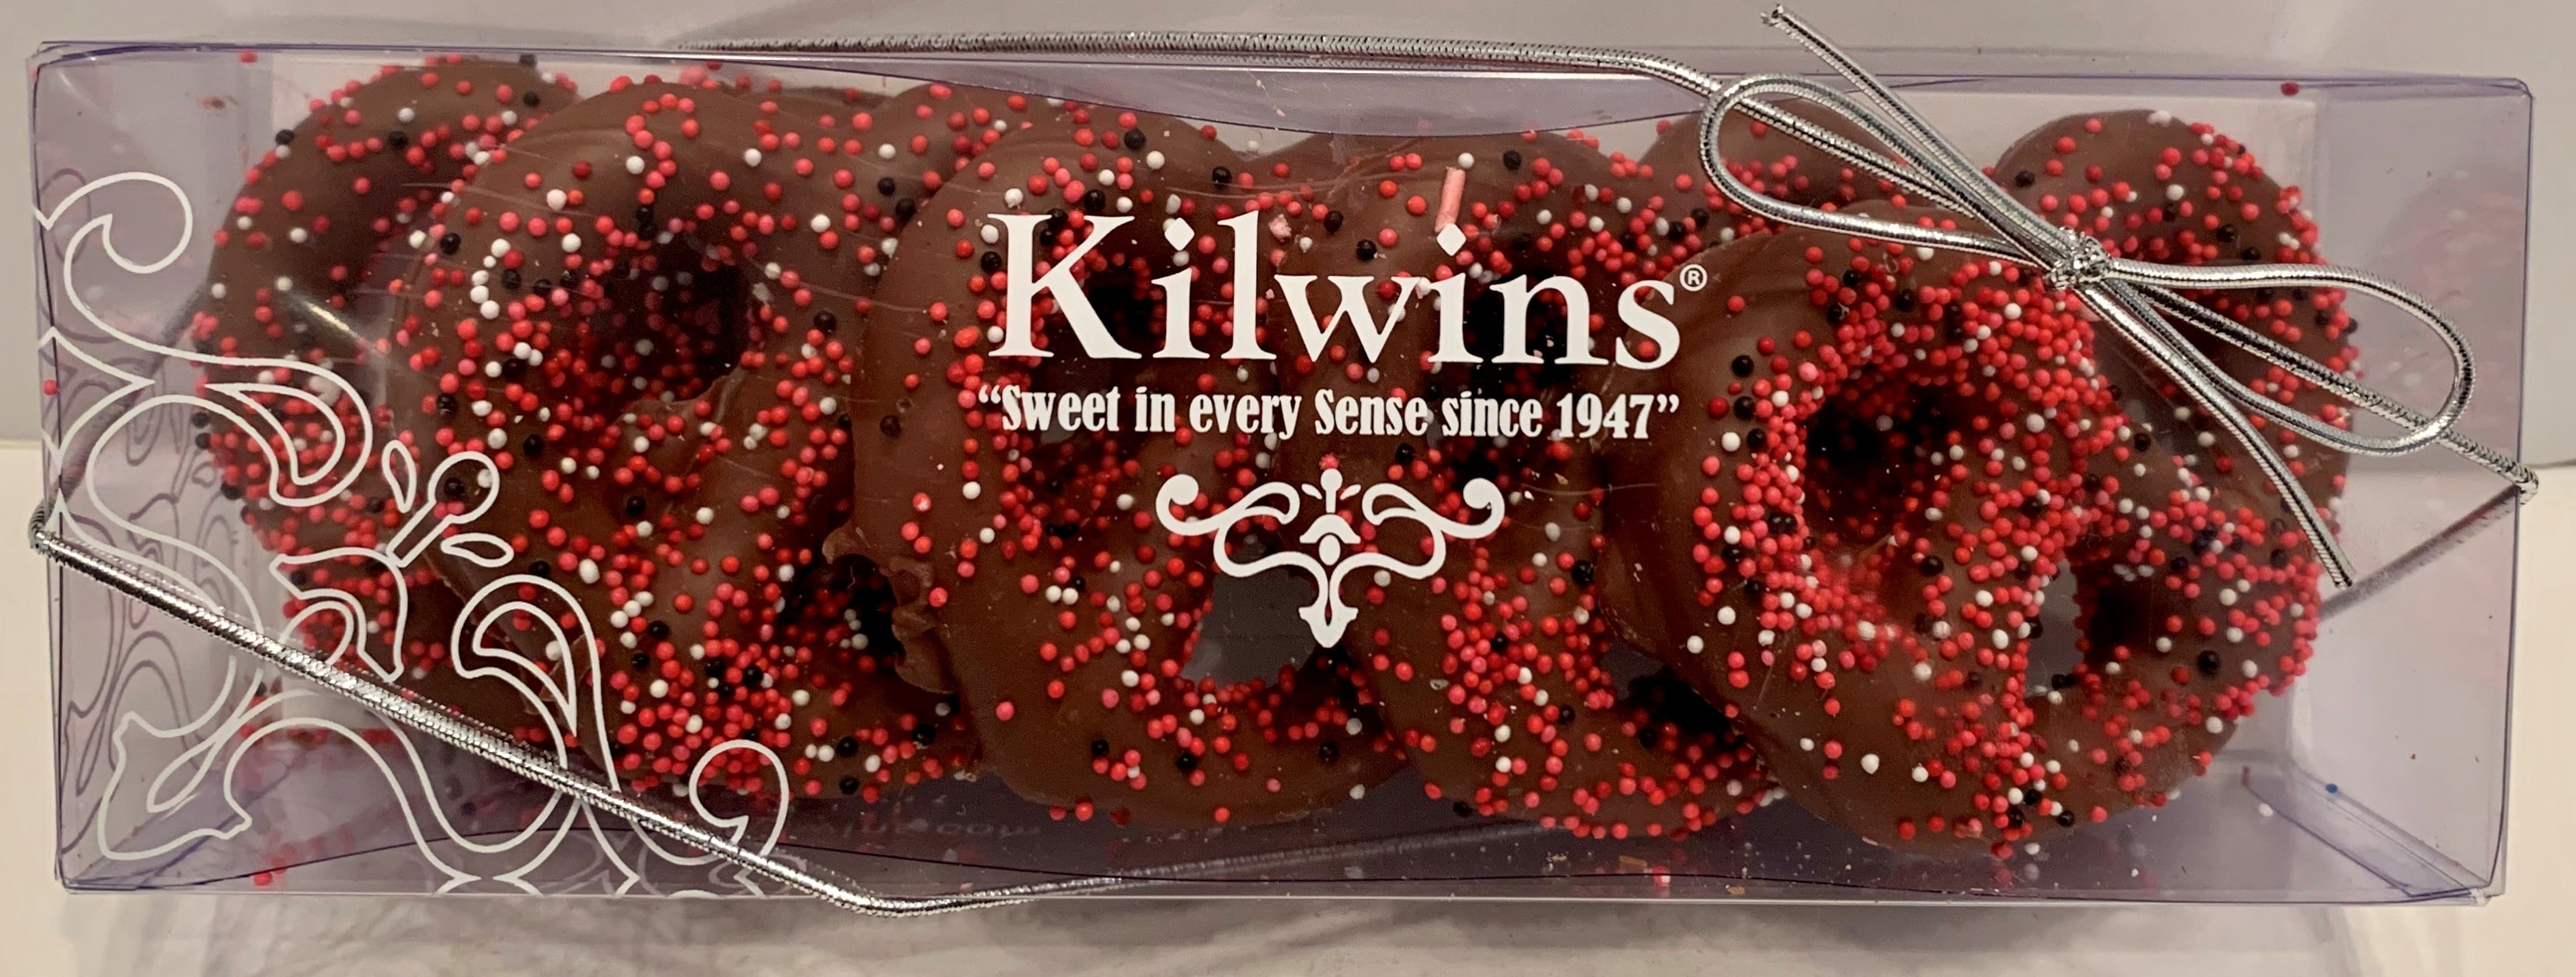 Kilwins Chocolate Covered Pretzels